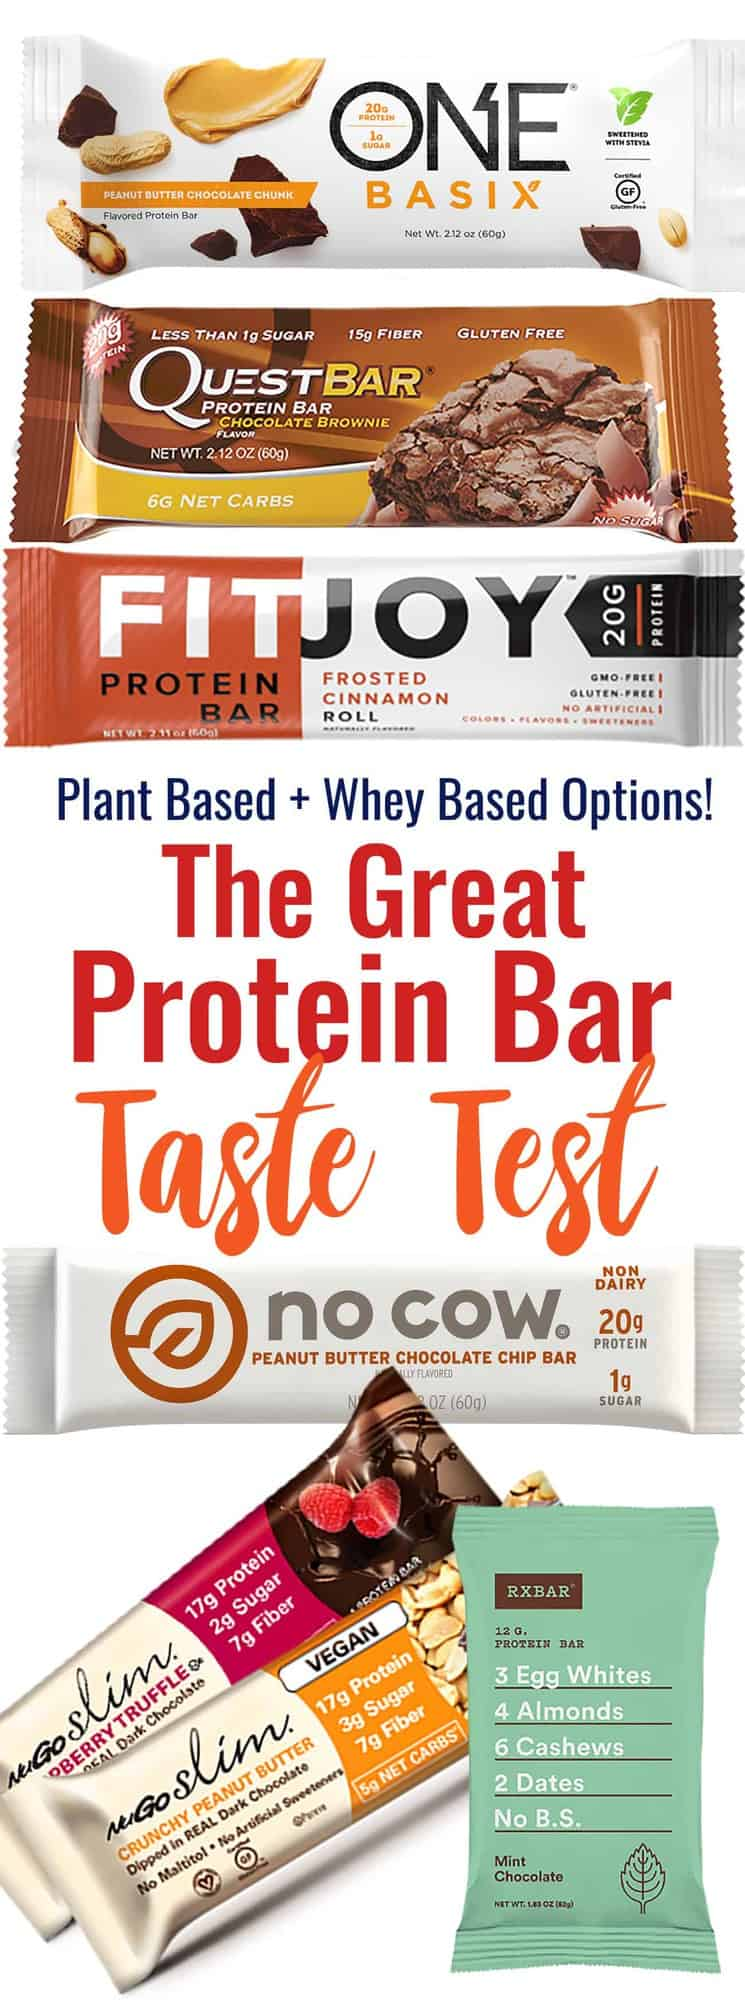 The Great Protein Bar Taste Test - We tasted 6 popular protein bars to make this protein bars review! Each are graded on taste and texture and include gluten free, plant based and whey protein bars. Come find out the best ones!   #Foodfaithfitness   #Nutrition #Healthy #glutenfree #plantbased #proteinbars